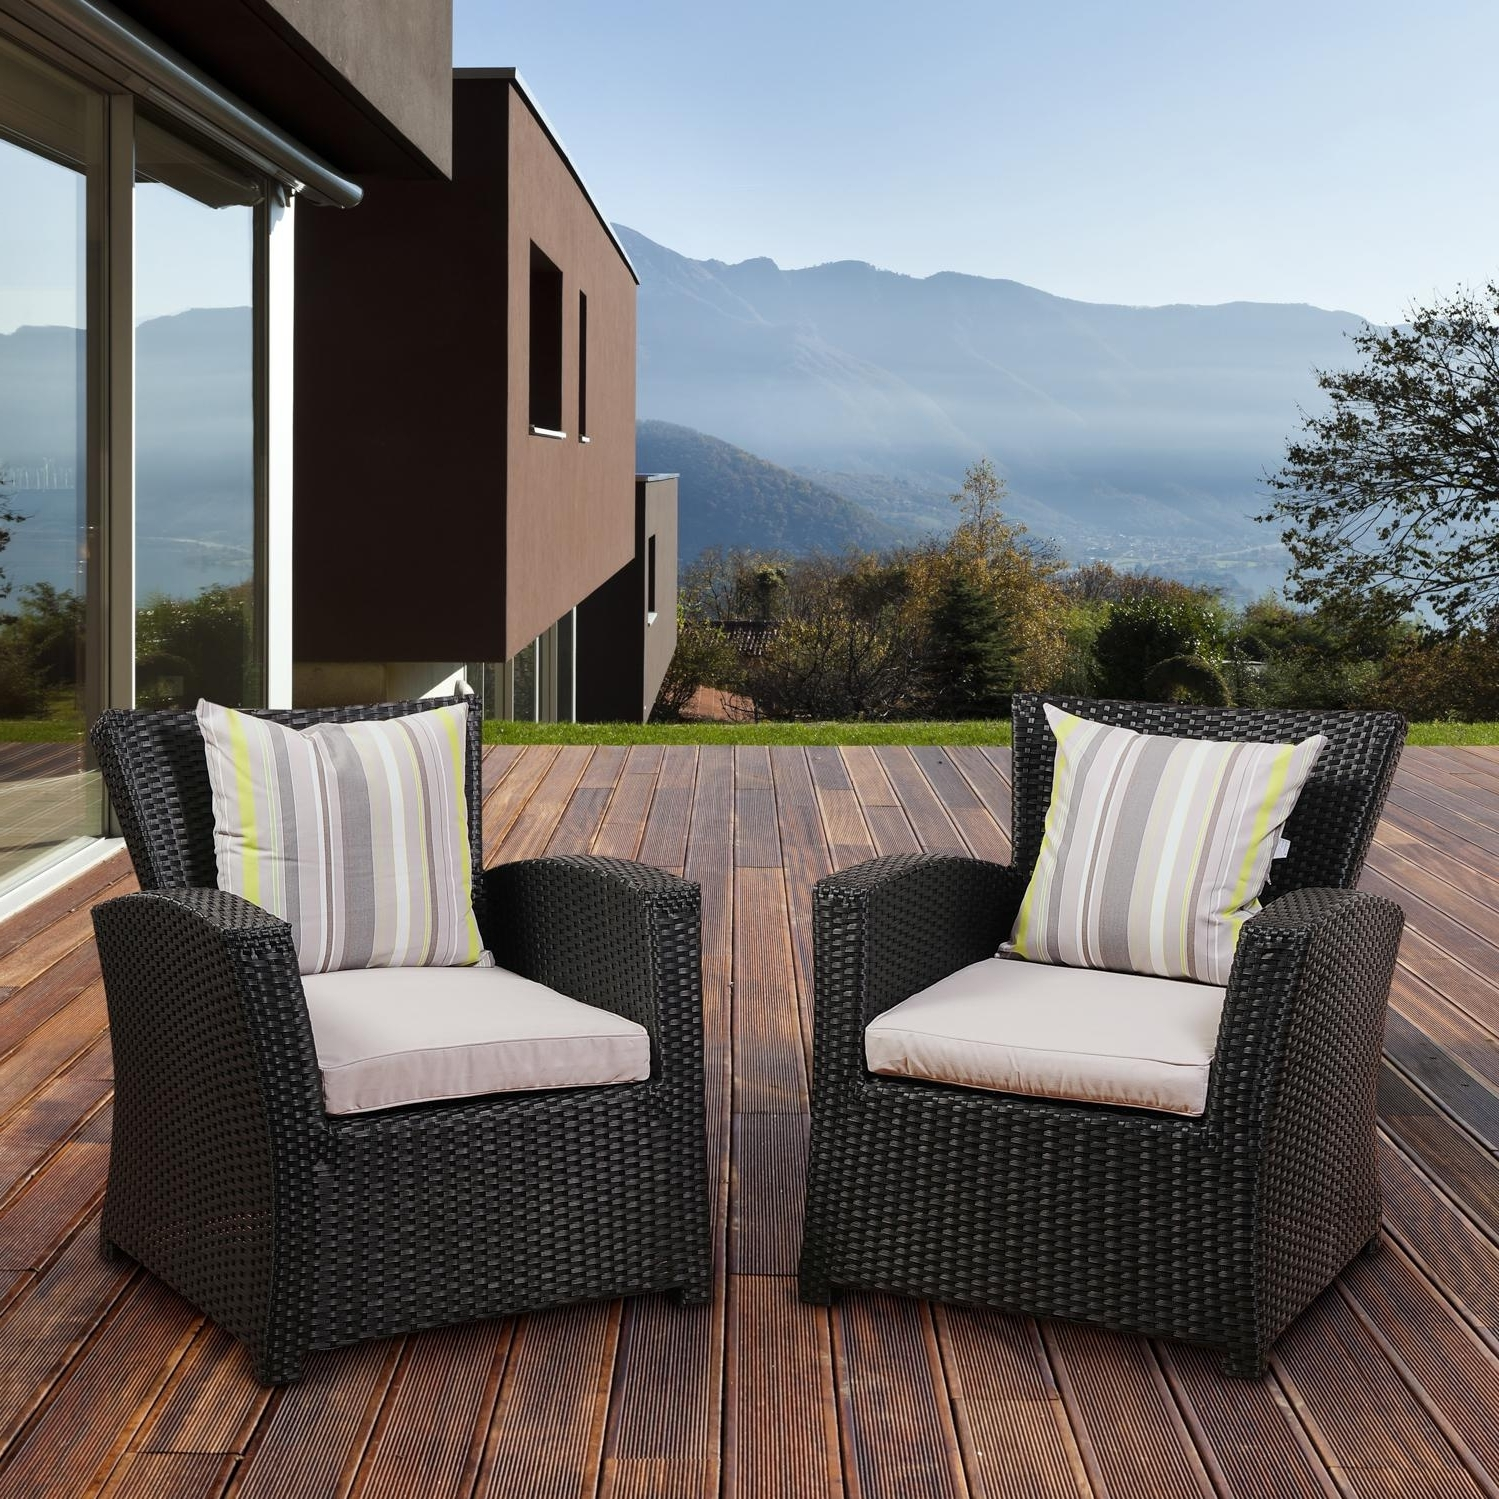 Newest Atlantic Staffordshire 4 Person Resin Wicker Patio Conversation Set Within Black Patio Conversation Sets (View 8 of 20)